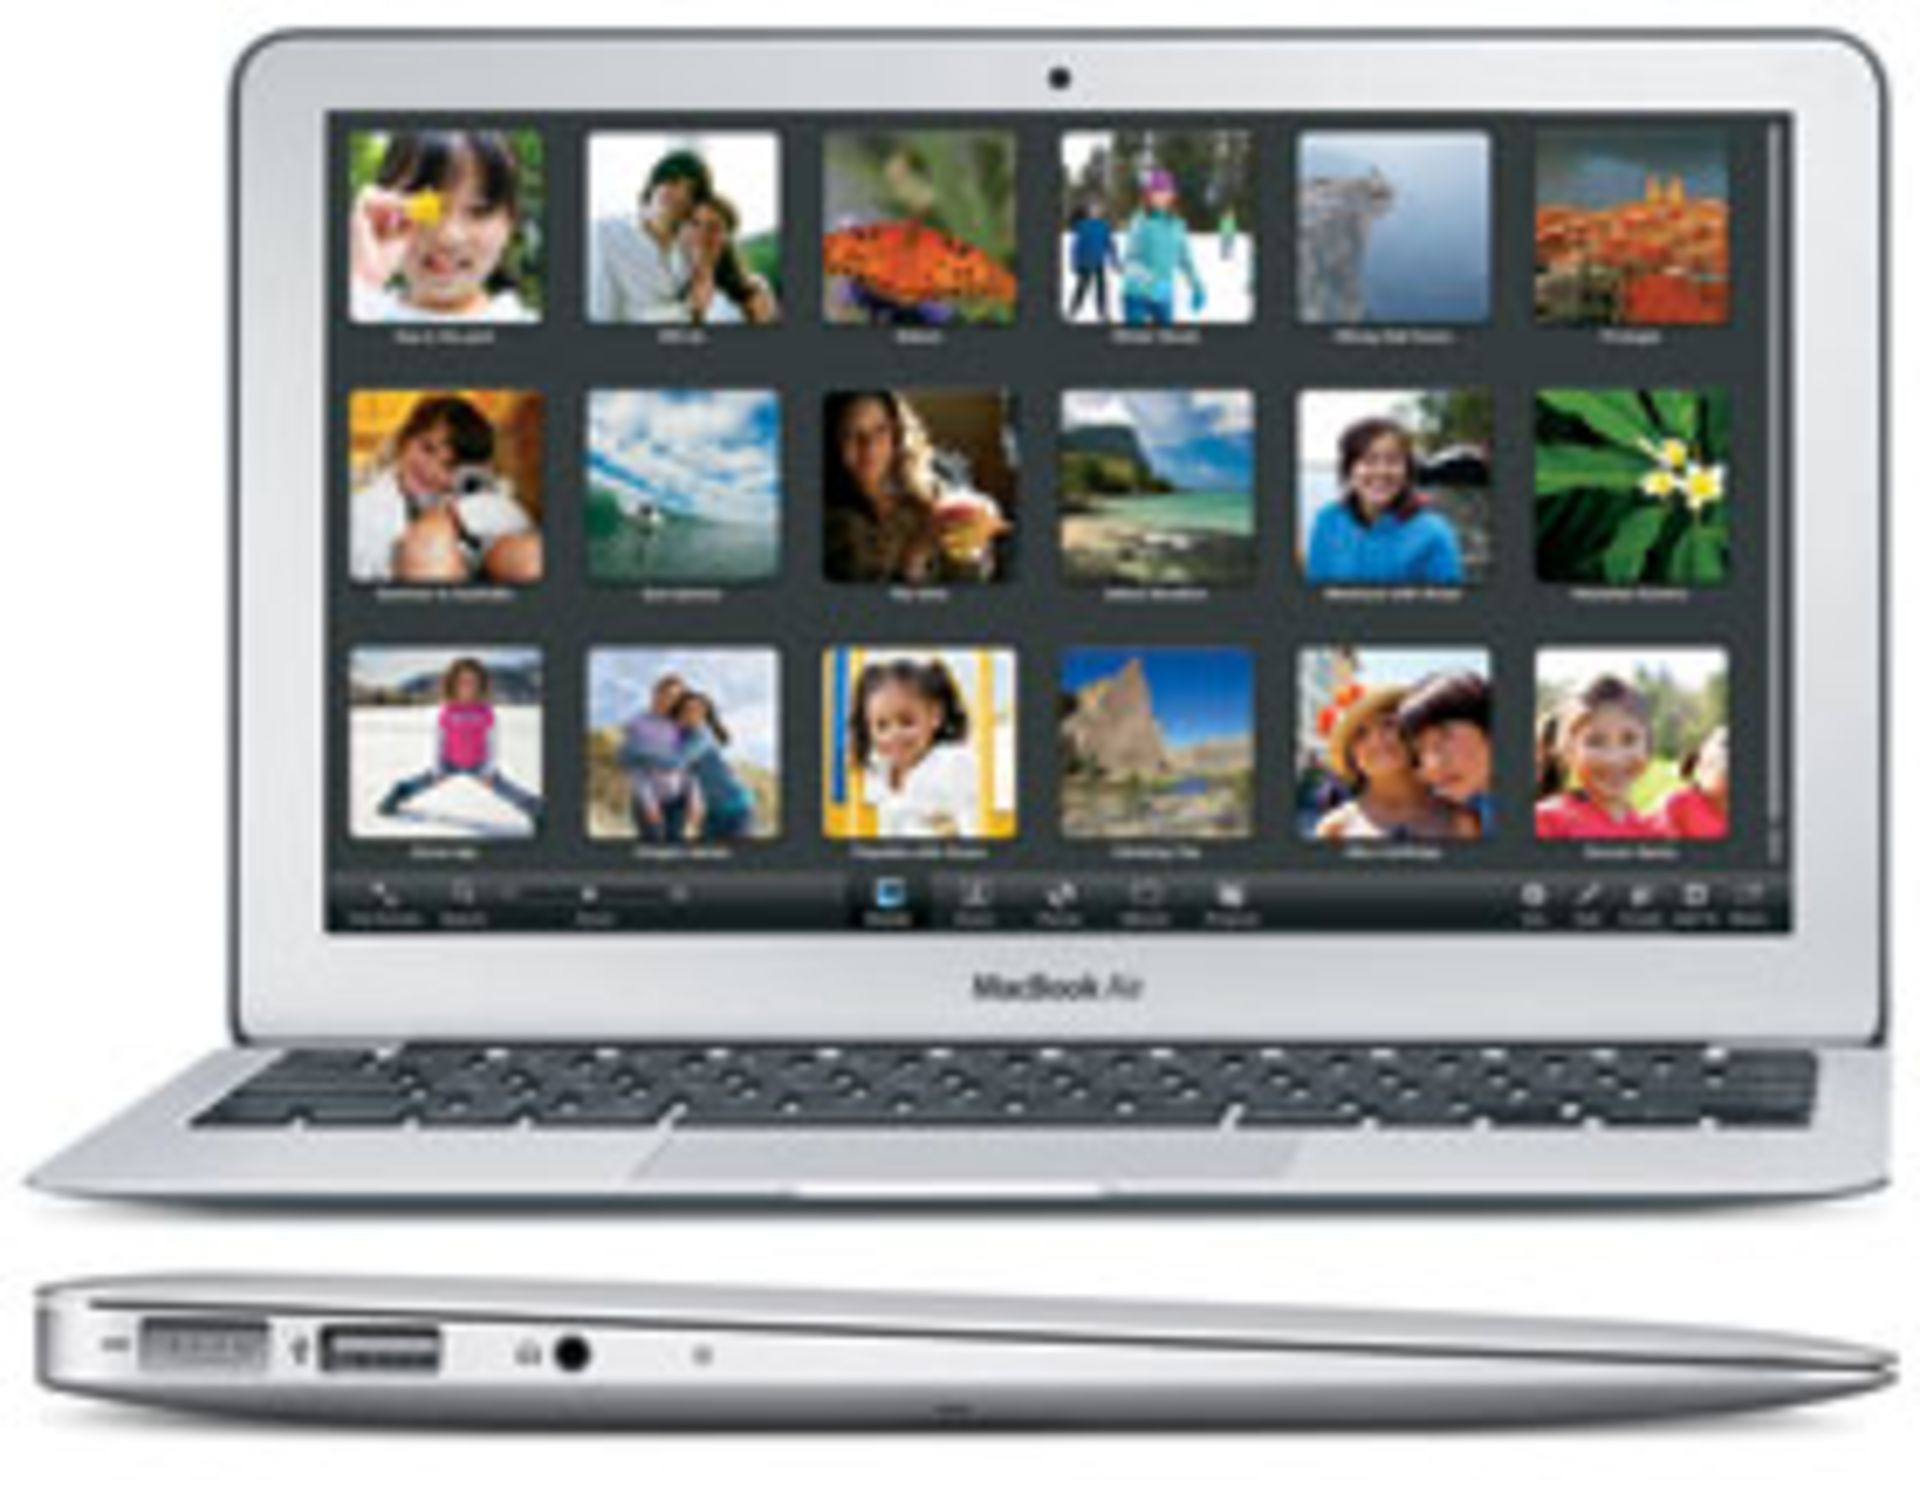 Lot 60036 - V Grade B Macbook Air 11.6 Inch Core 2 Duo - 64GB SSD - A1370 - Available Approx 7 Working Days